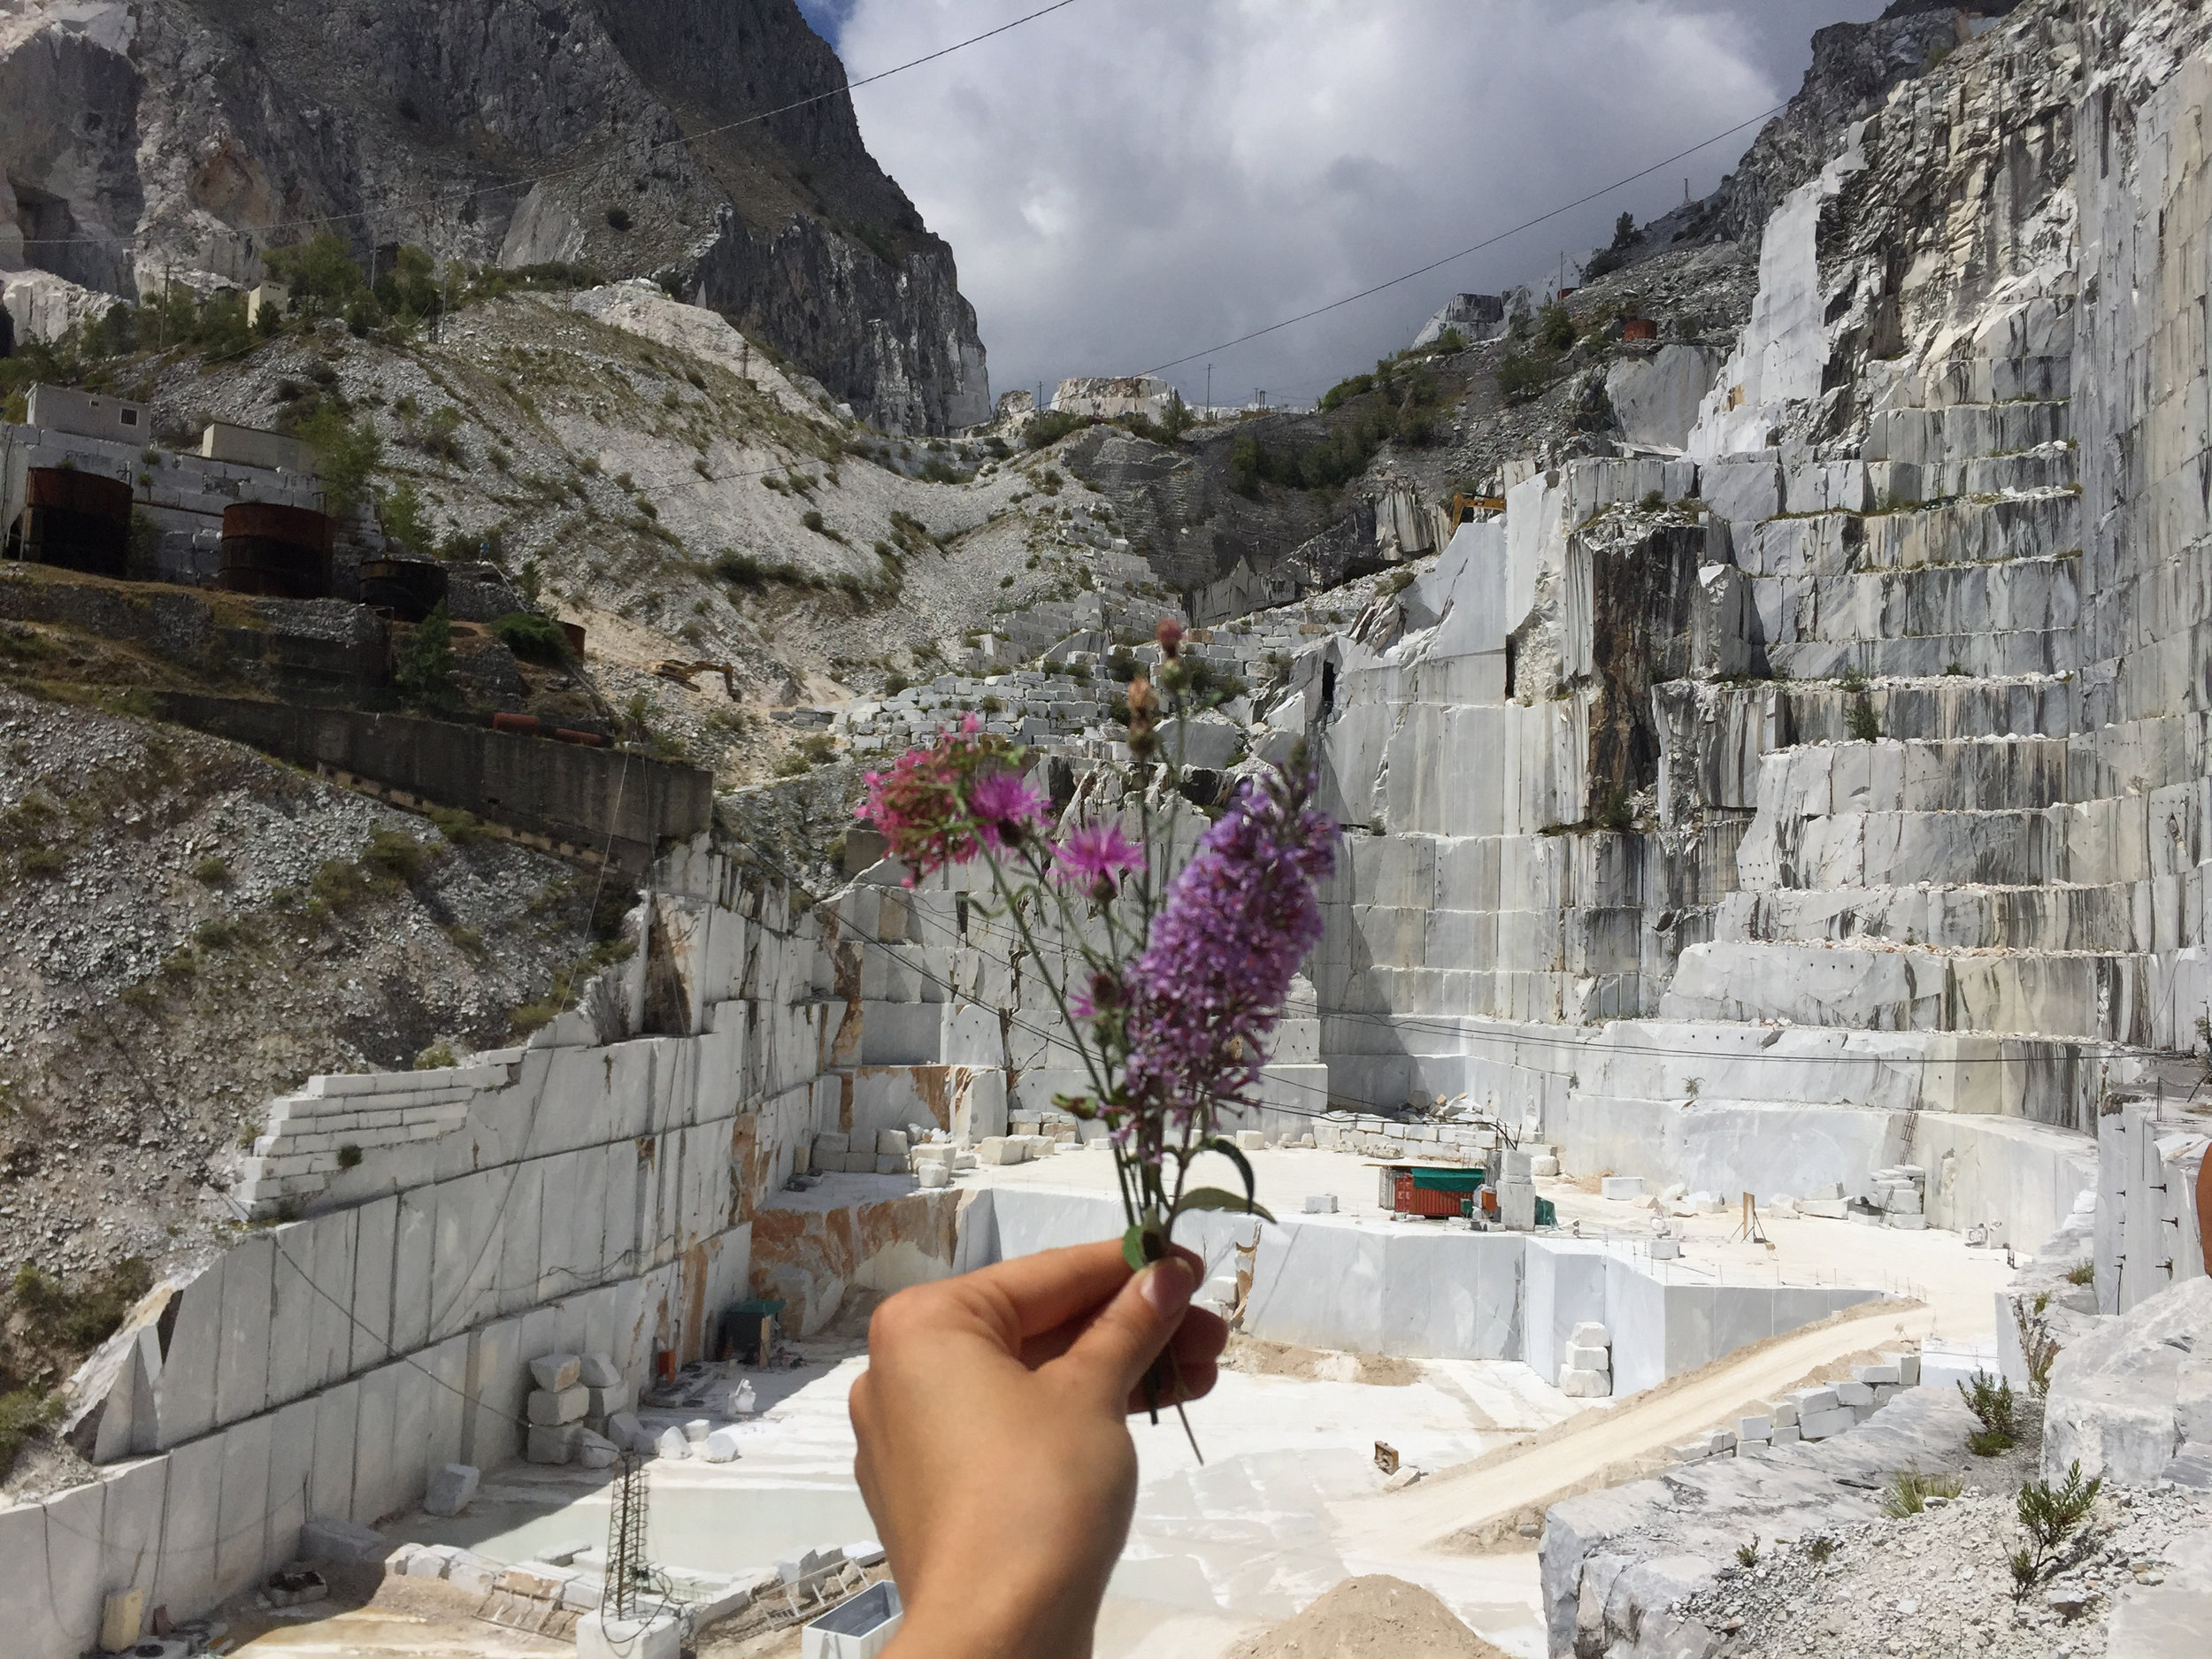 Carrara Quarry Wildflowers by Siri Thorson